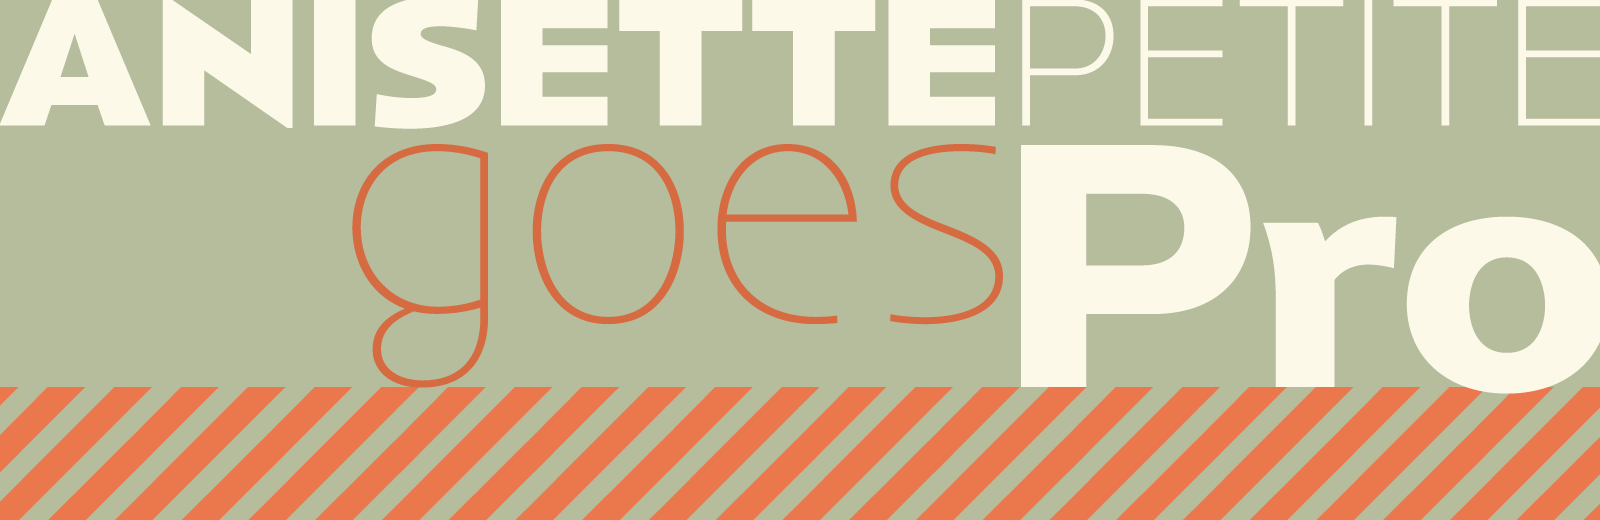 Anisette Petite available immediately into the OpenType Pro version at Typofonderie